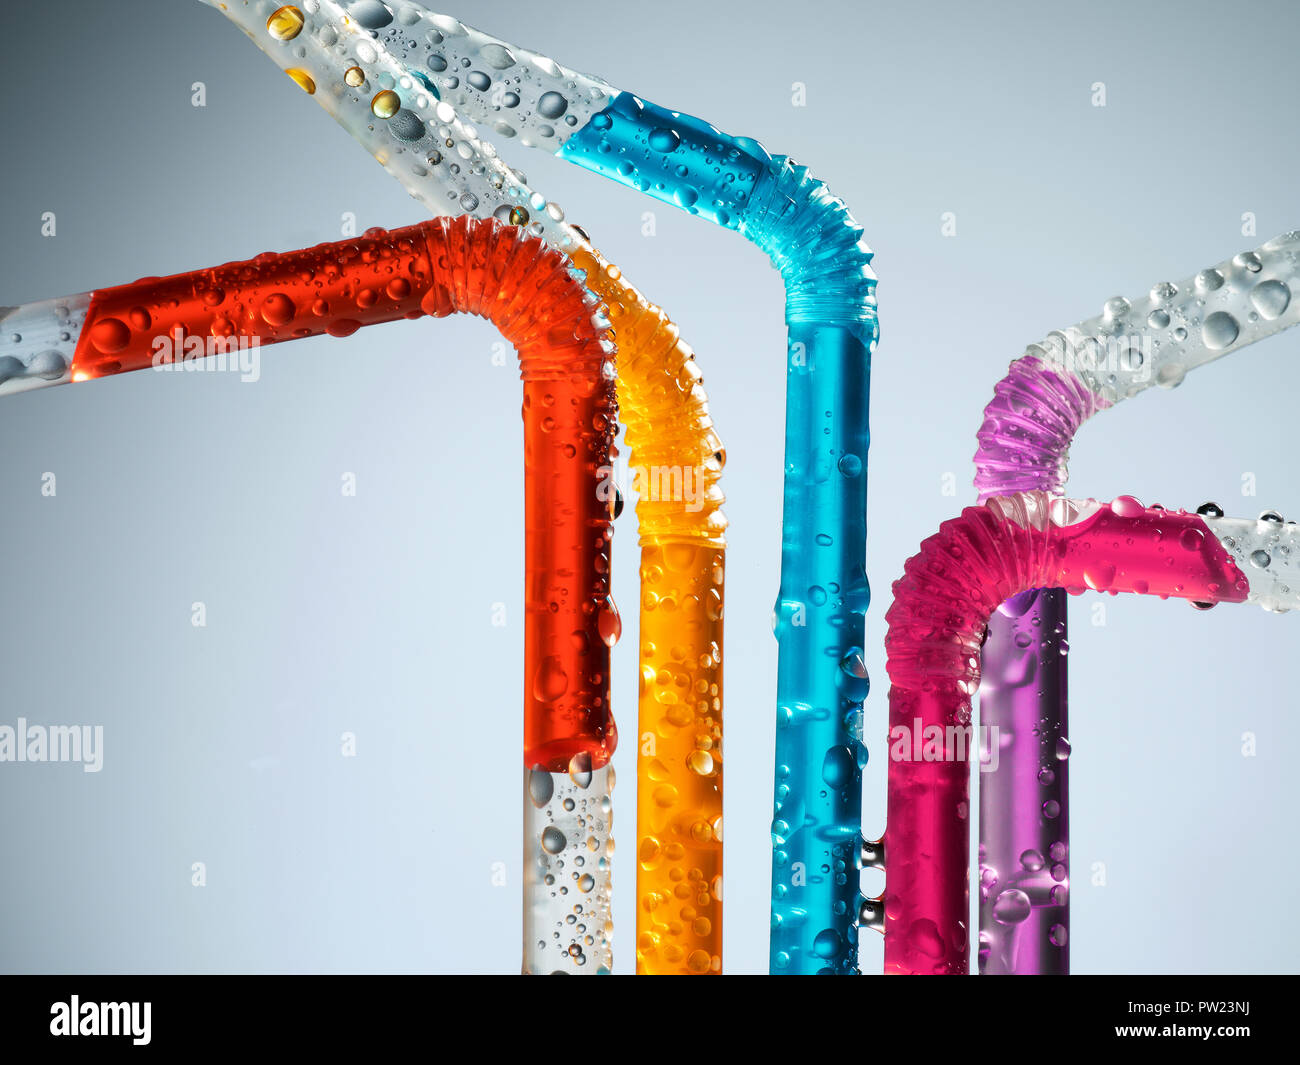 A Group of colored Straws with colorful Liquids, Summer Fun, Cheerful - Stock Image